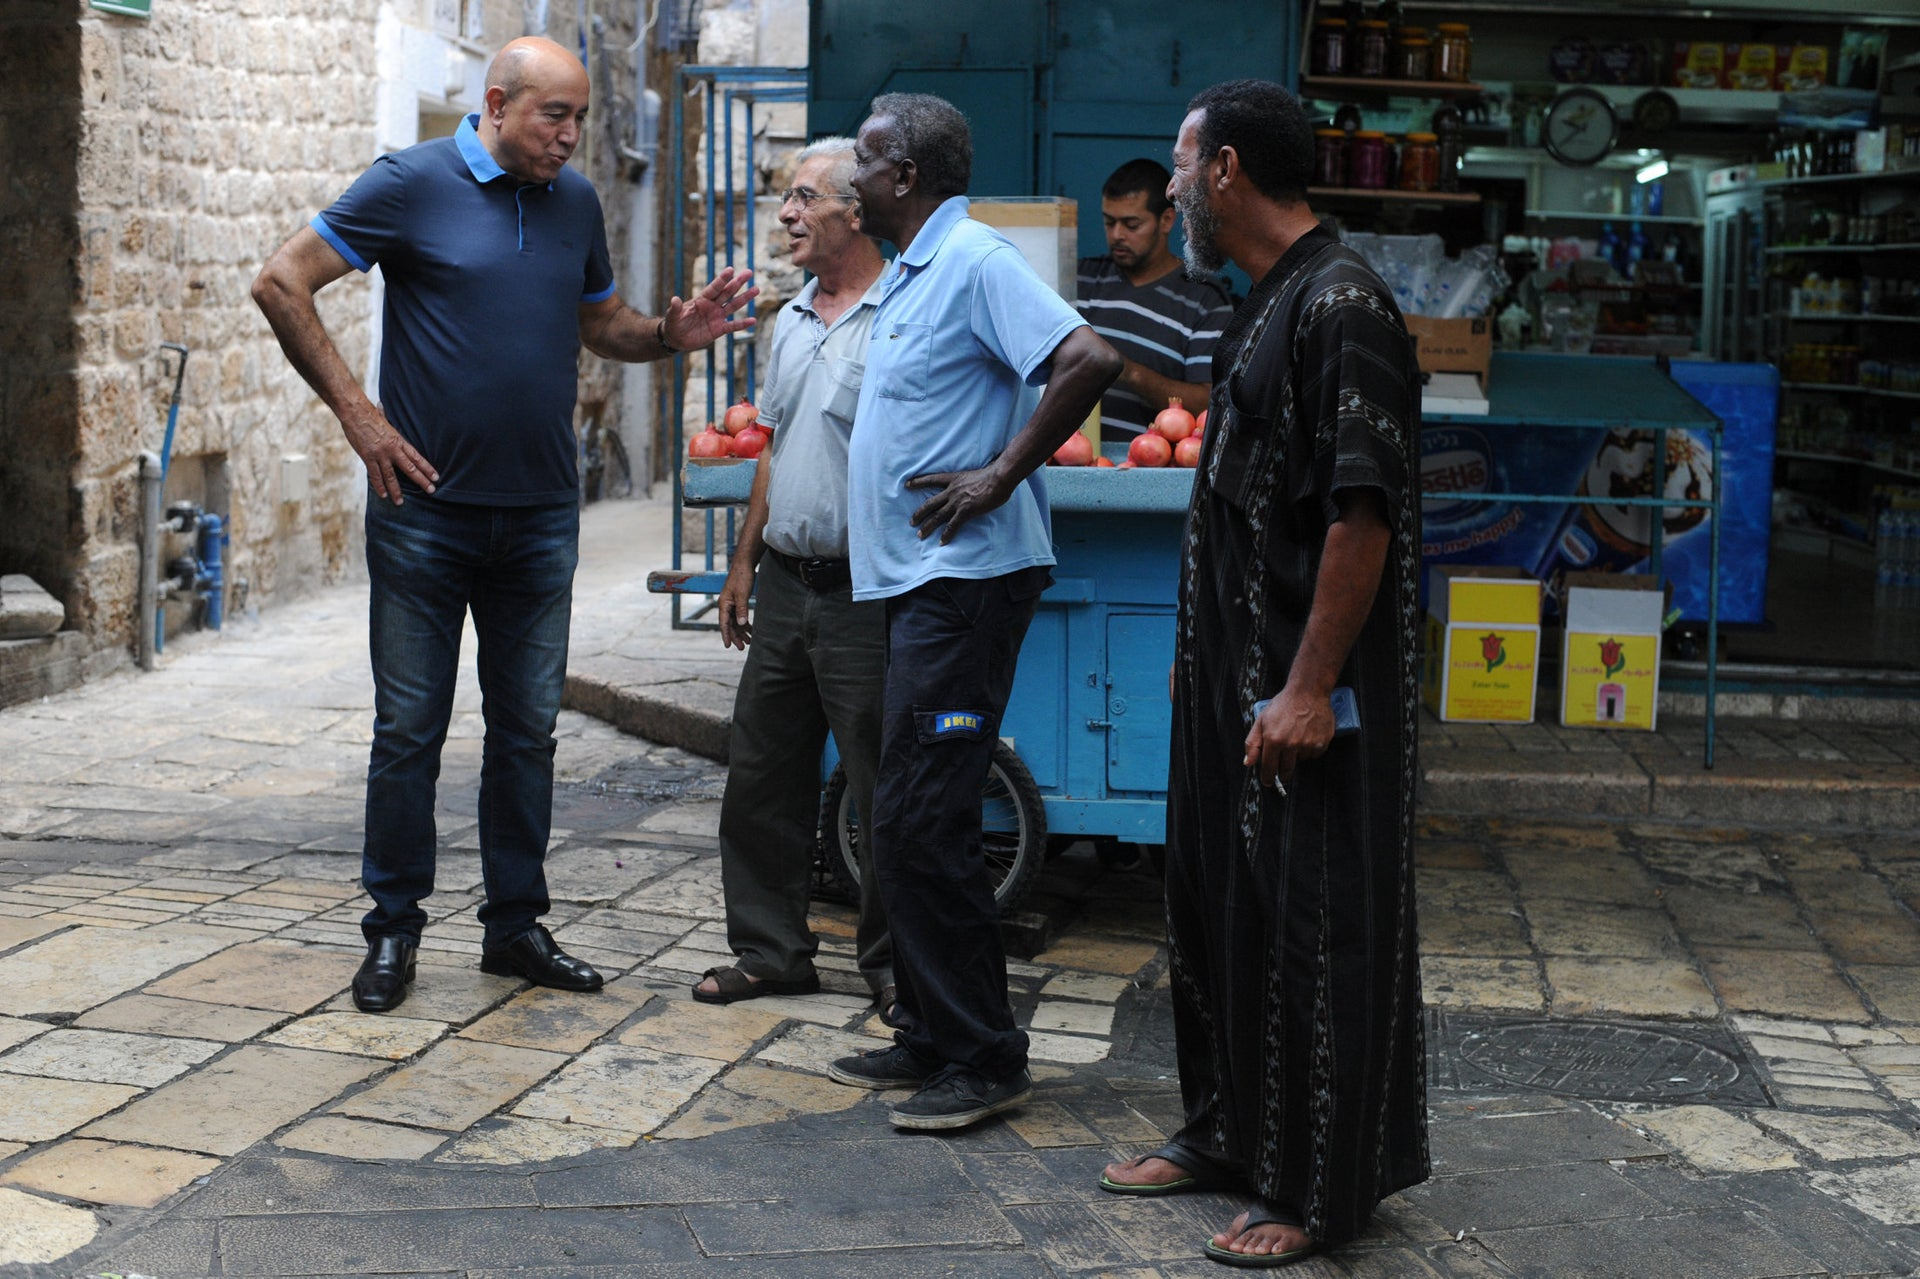 Former Knesset Member Zouheir Bahloul talks to people at the Acre market.